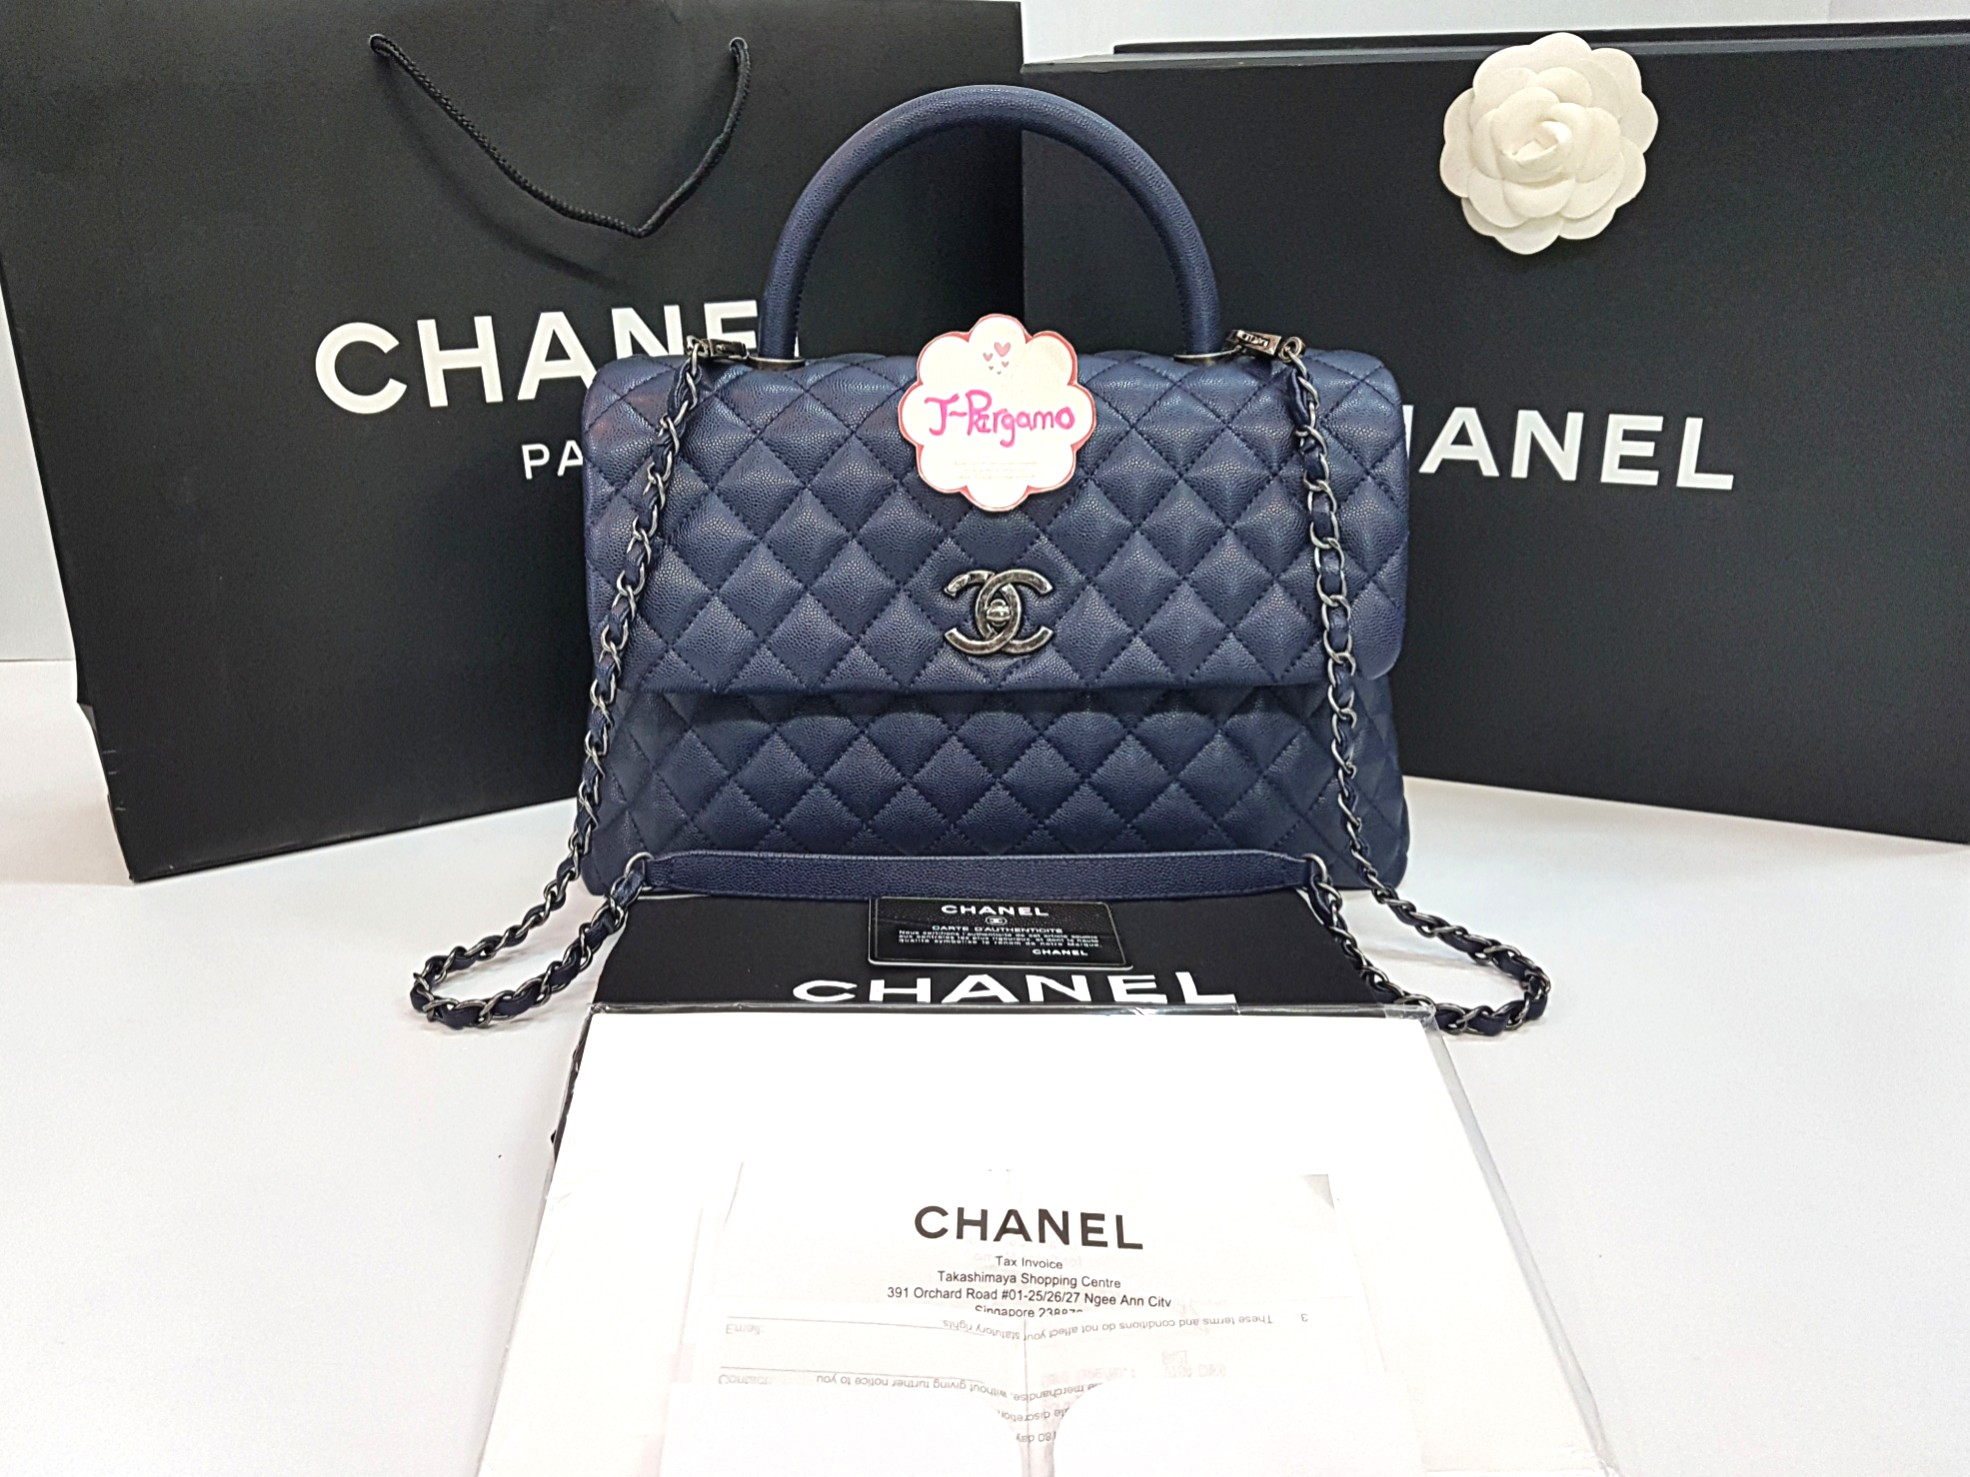 c3342492310aa7 🎉 Sold 🎉 Authentic LNIB Chanel Coco Handle Caviar Medium Flap Bag ...